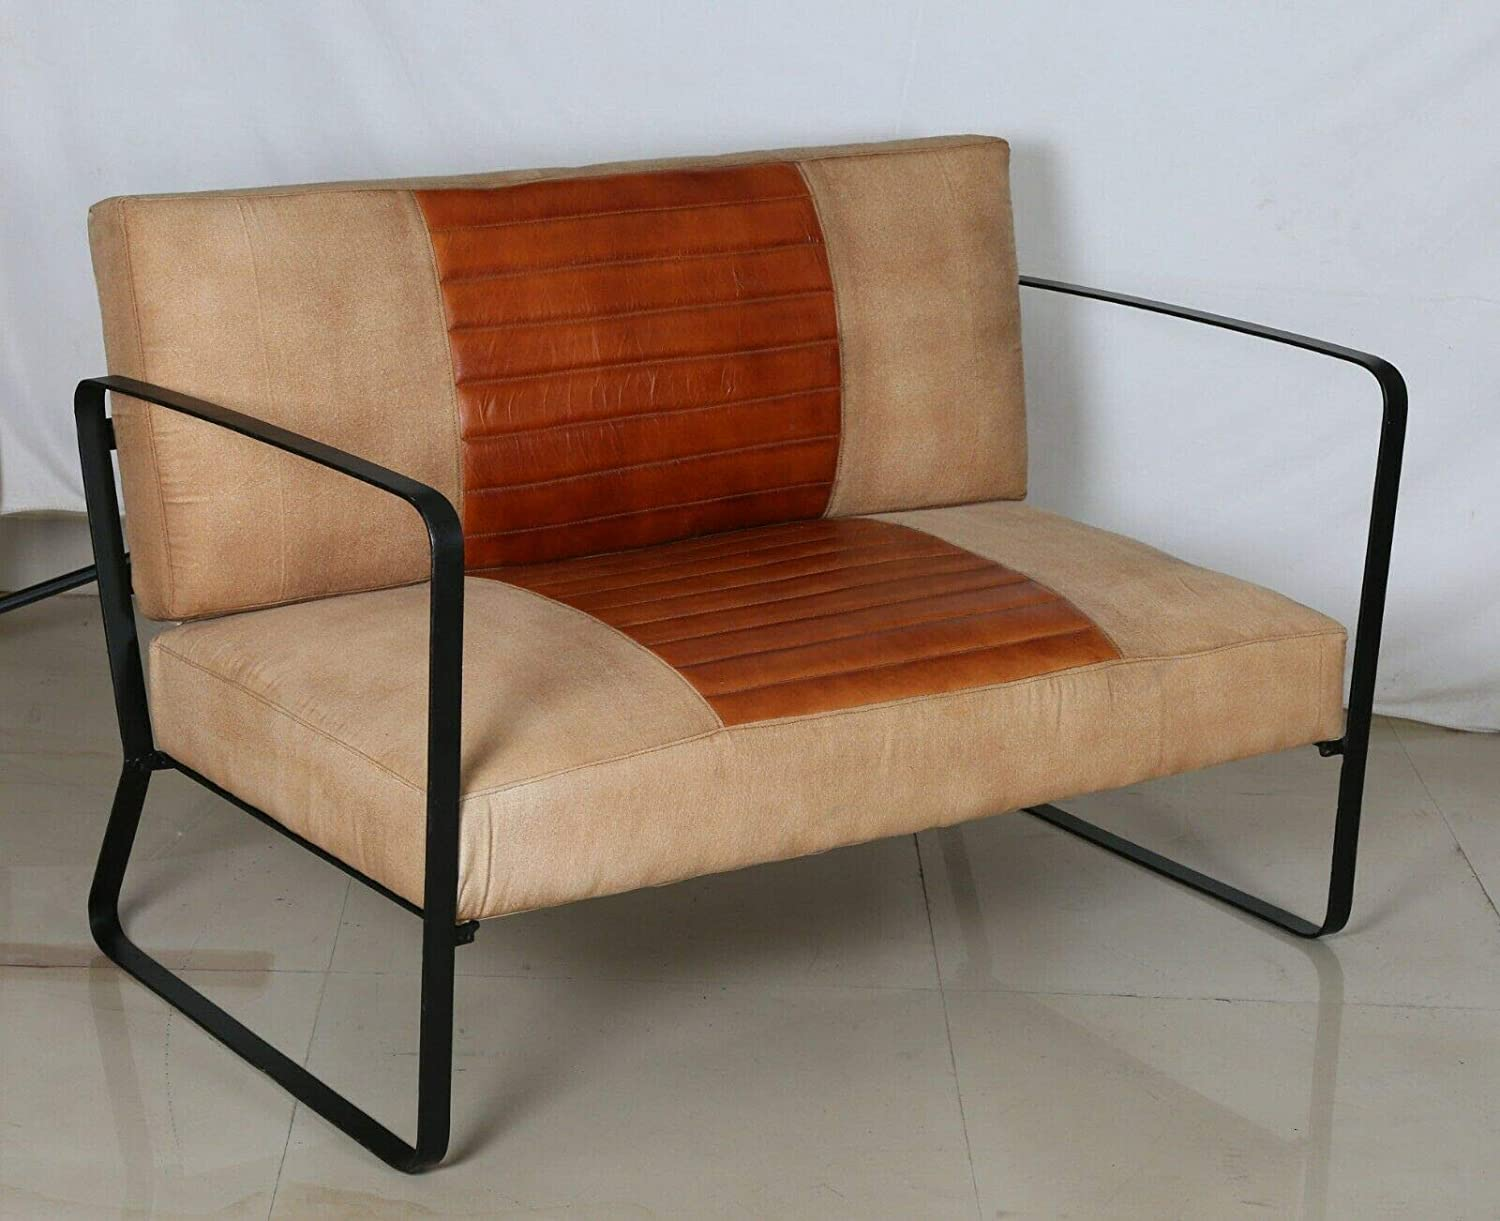 Amazon.com: Ms Exim Craft Office Sofa Leather 46 seater: Handmade